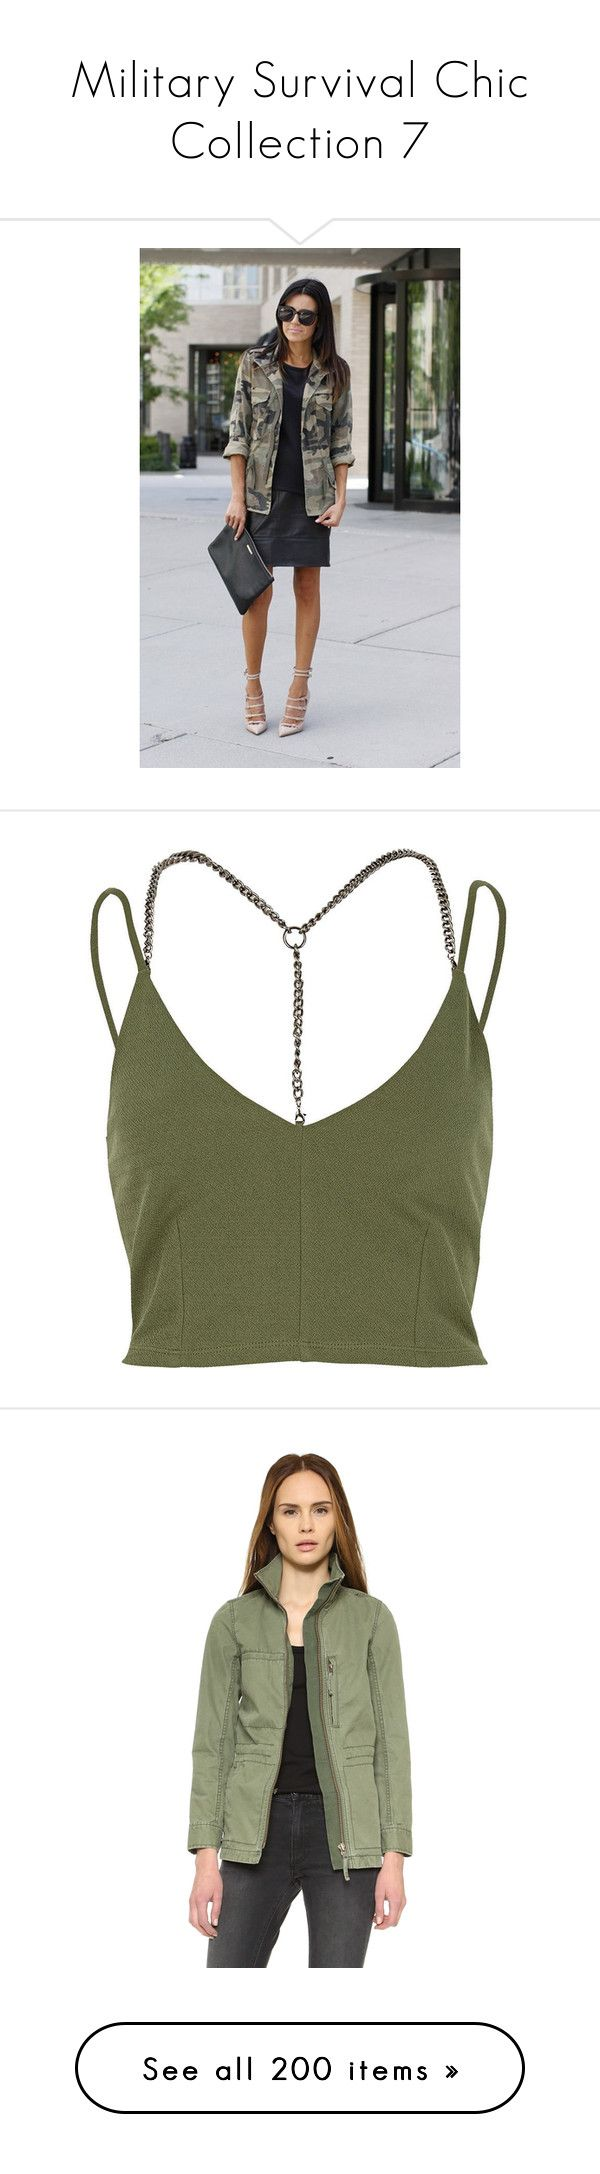 """""""Military Survival Chic Collection 7"""" by liddy-white ❤ liked on Polyvore featuring animal print, tops, crop tops, shirts, tank tops, khaki, cami crop top, strap crop top, green shirt and cami top"""